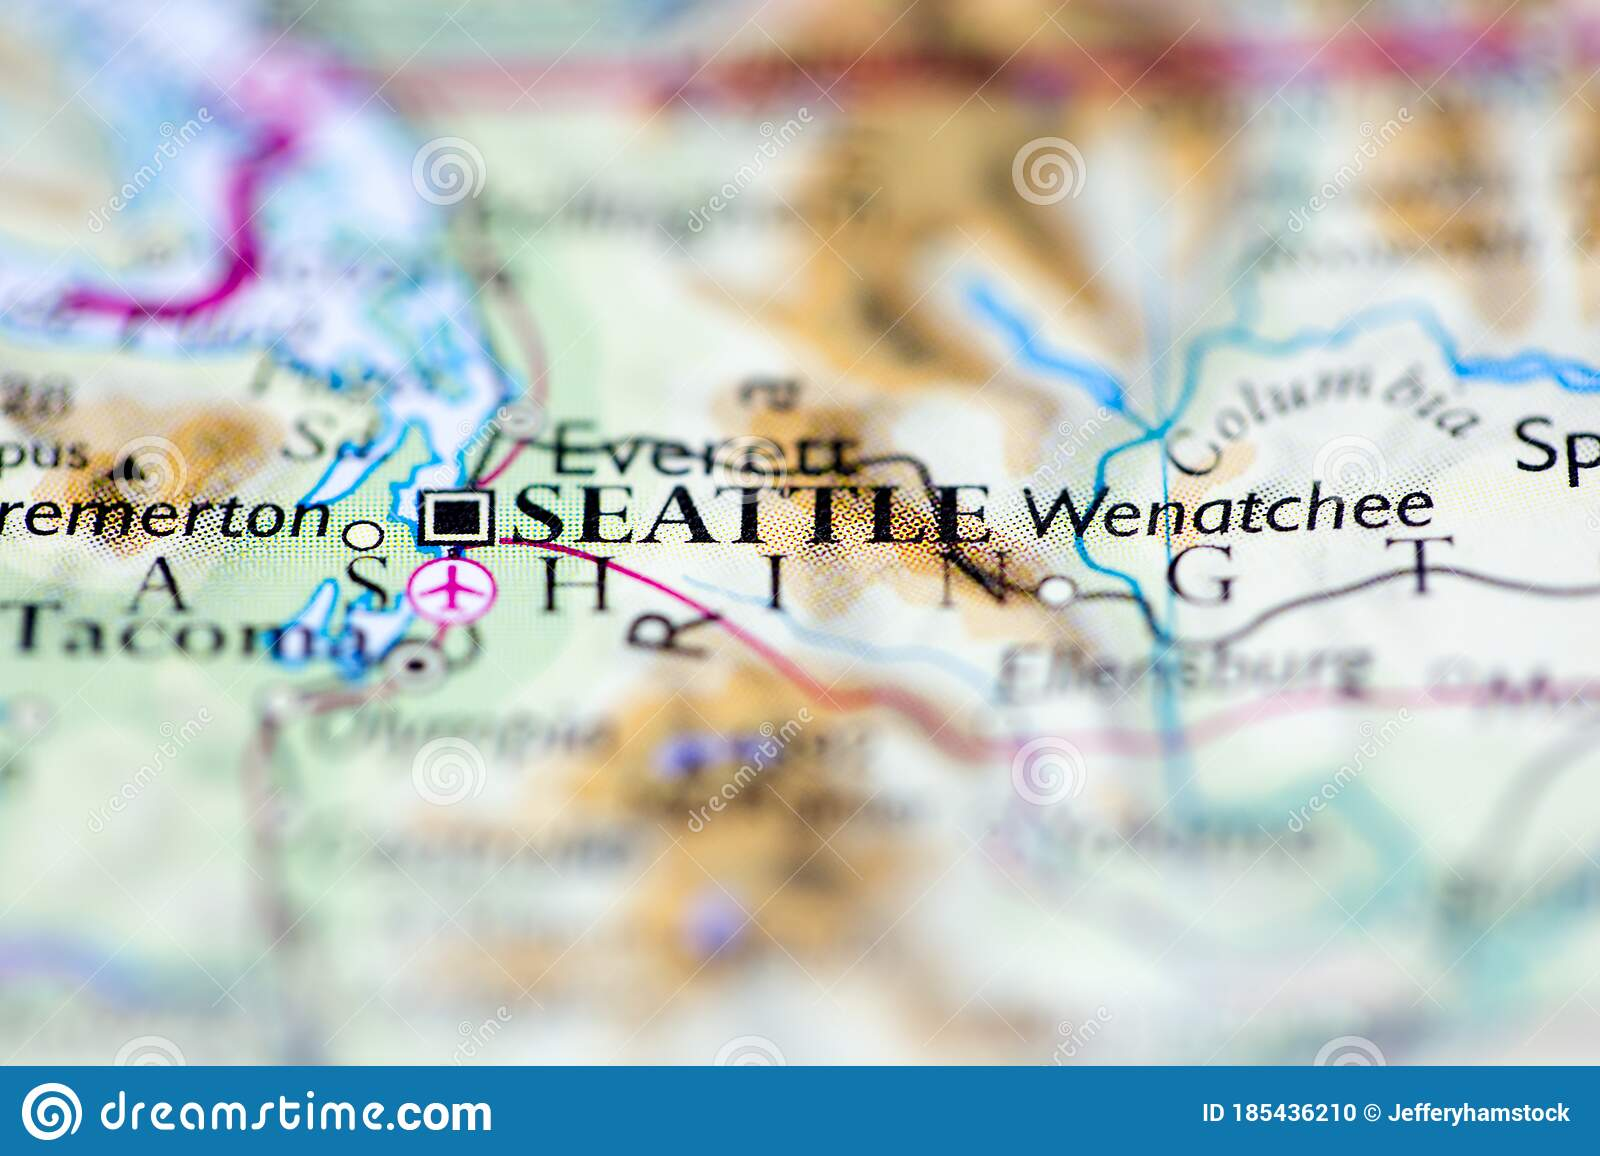 Picture of: Shallow Depth Of Field Focus On Geographical Map Location Of Seattle City United States Of America Usa Continent On Atlas Stock Photo Image Of Destination Exploration 185436210